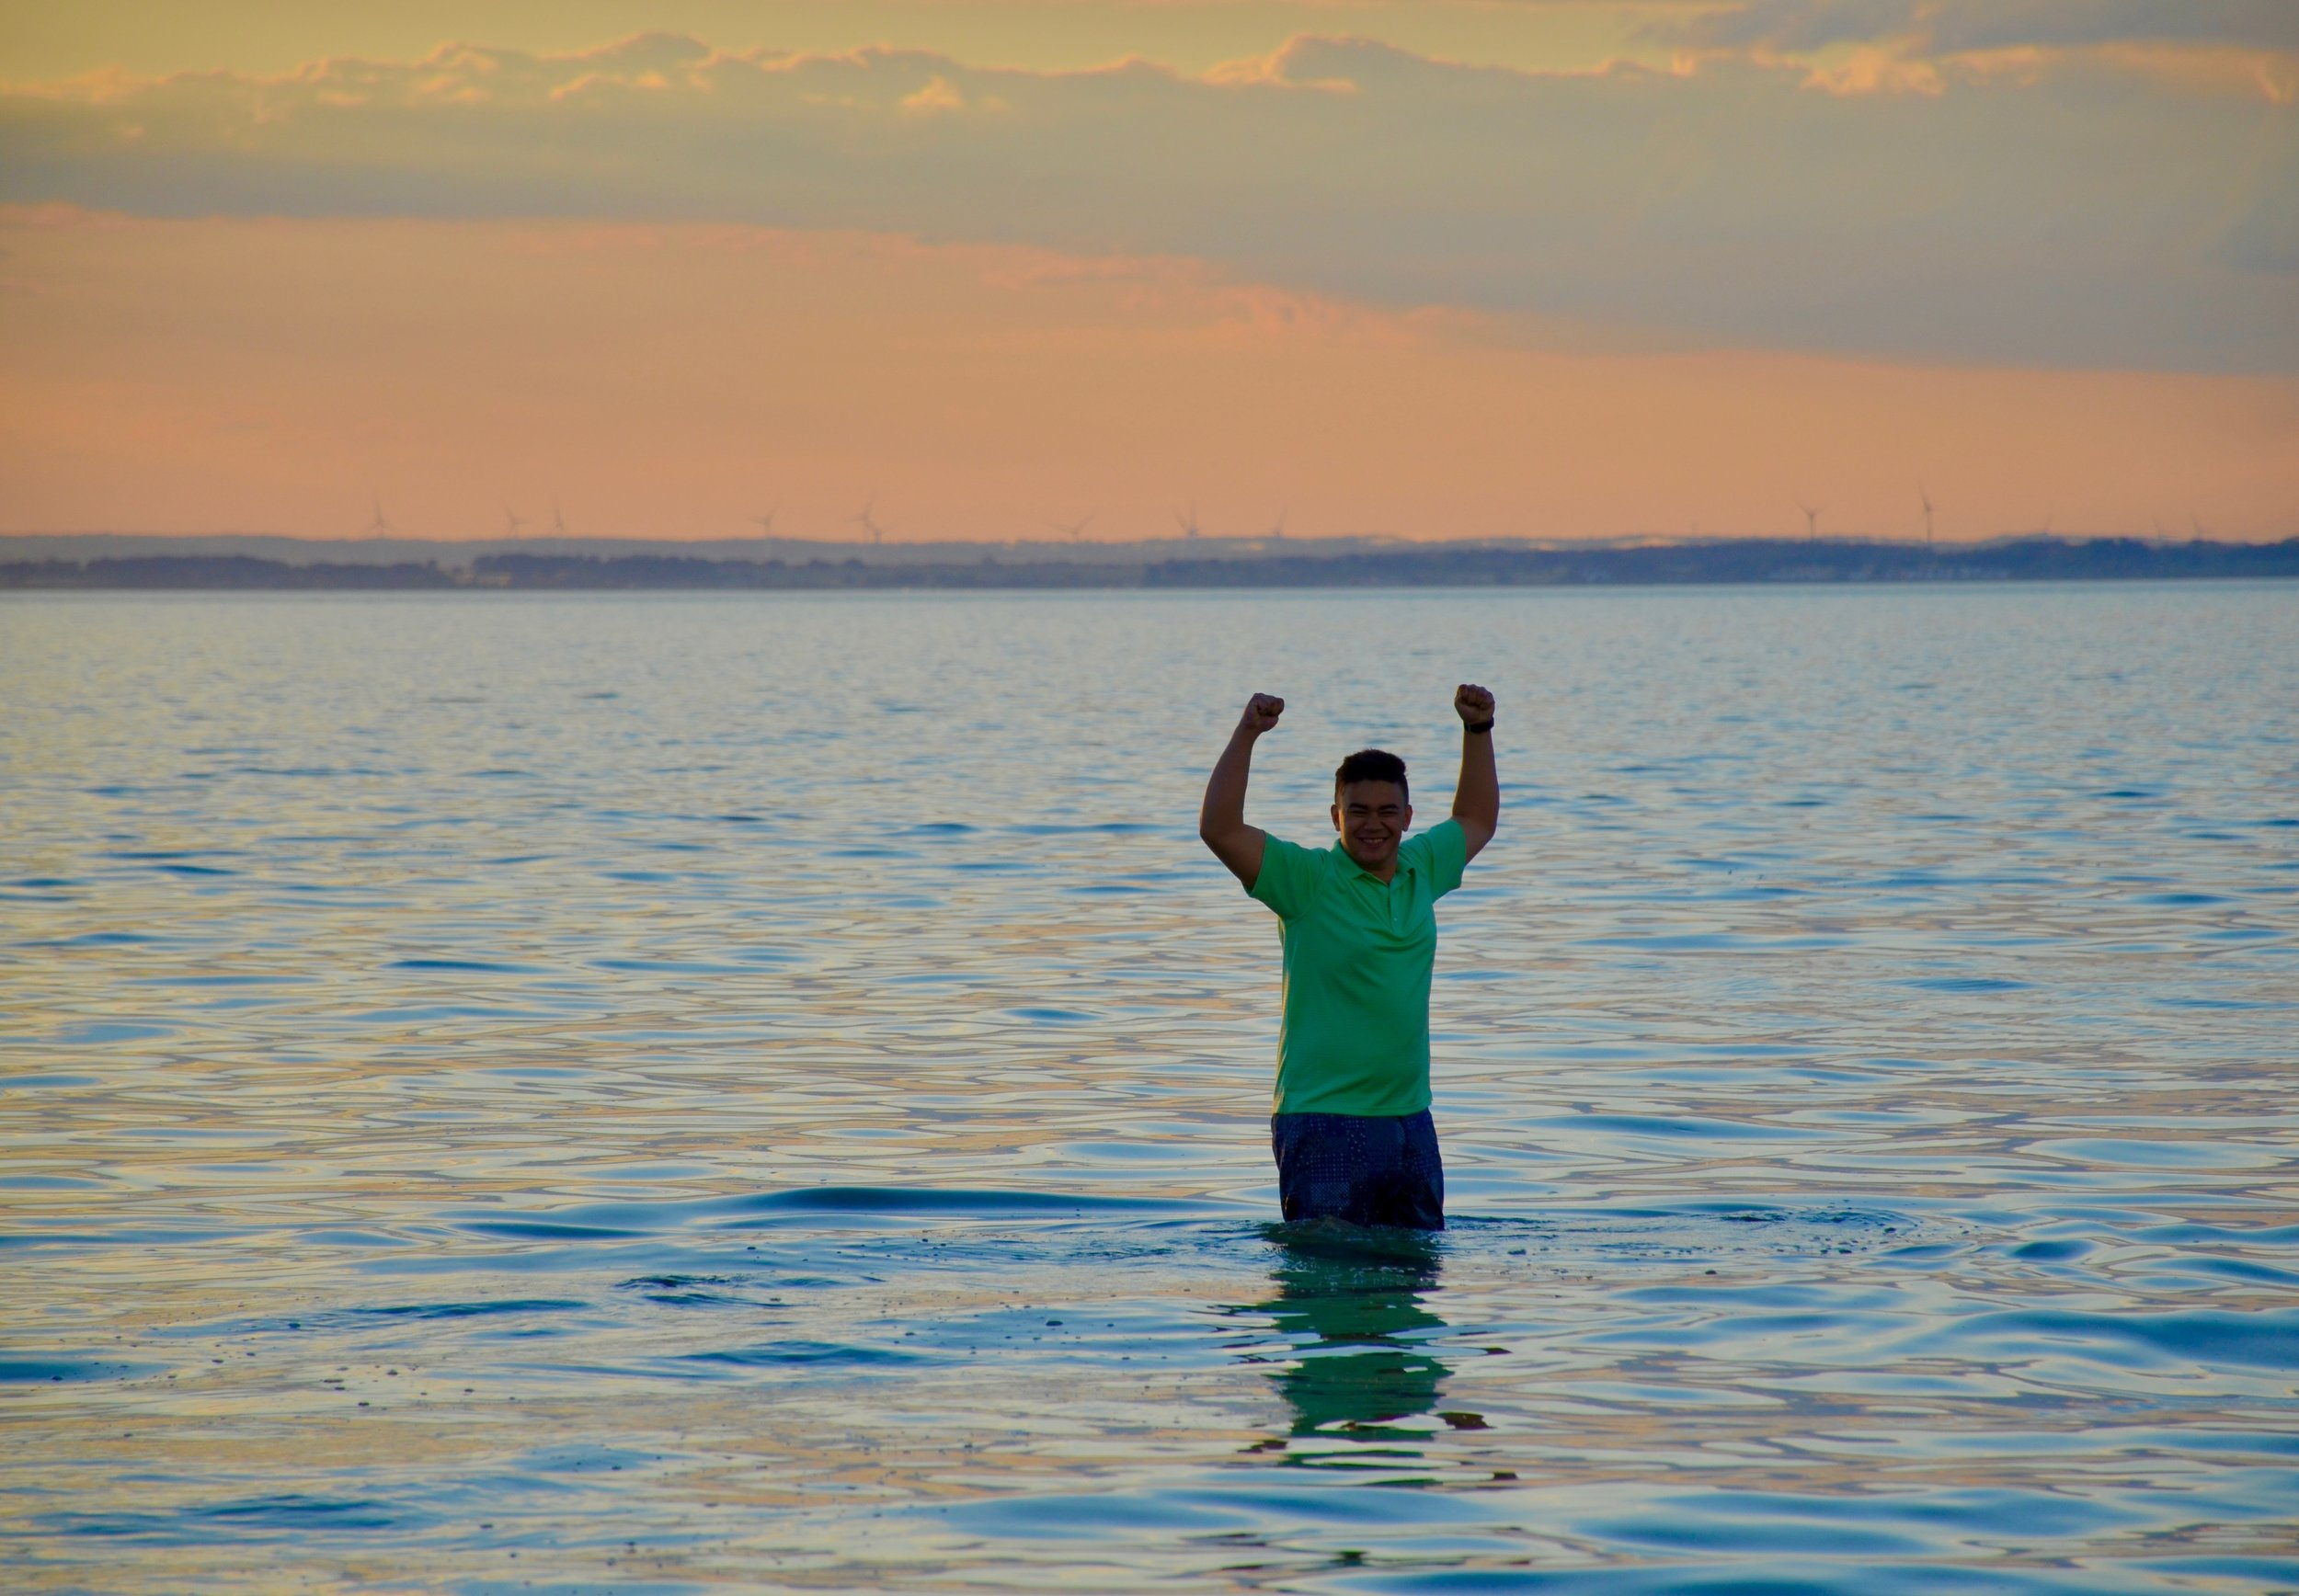 Alex Straus-Fausto enjoys an evening along (in) the Baltic Sea.